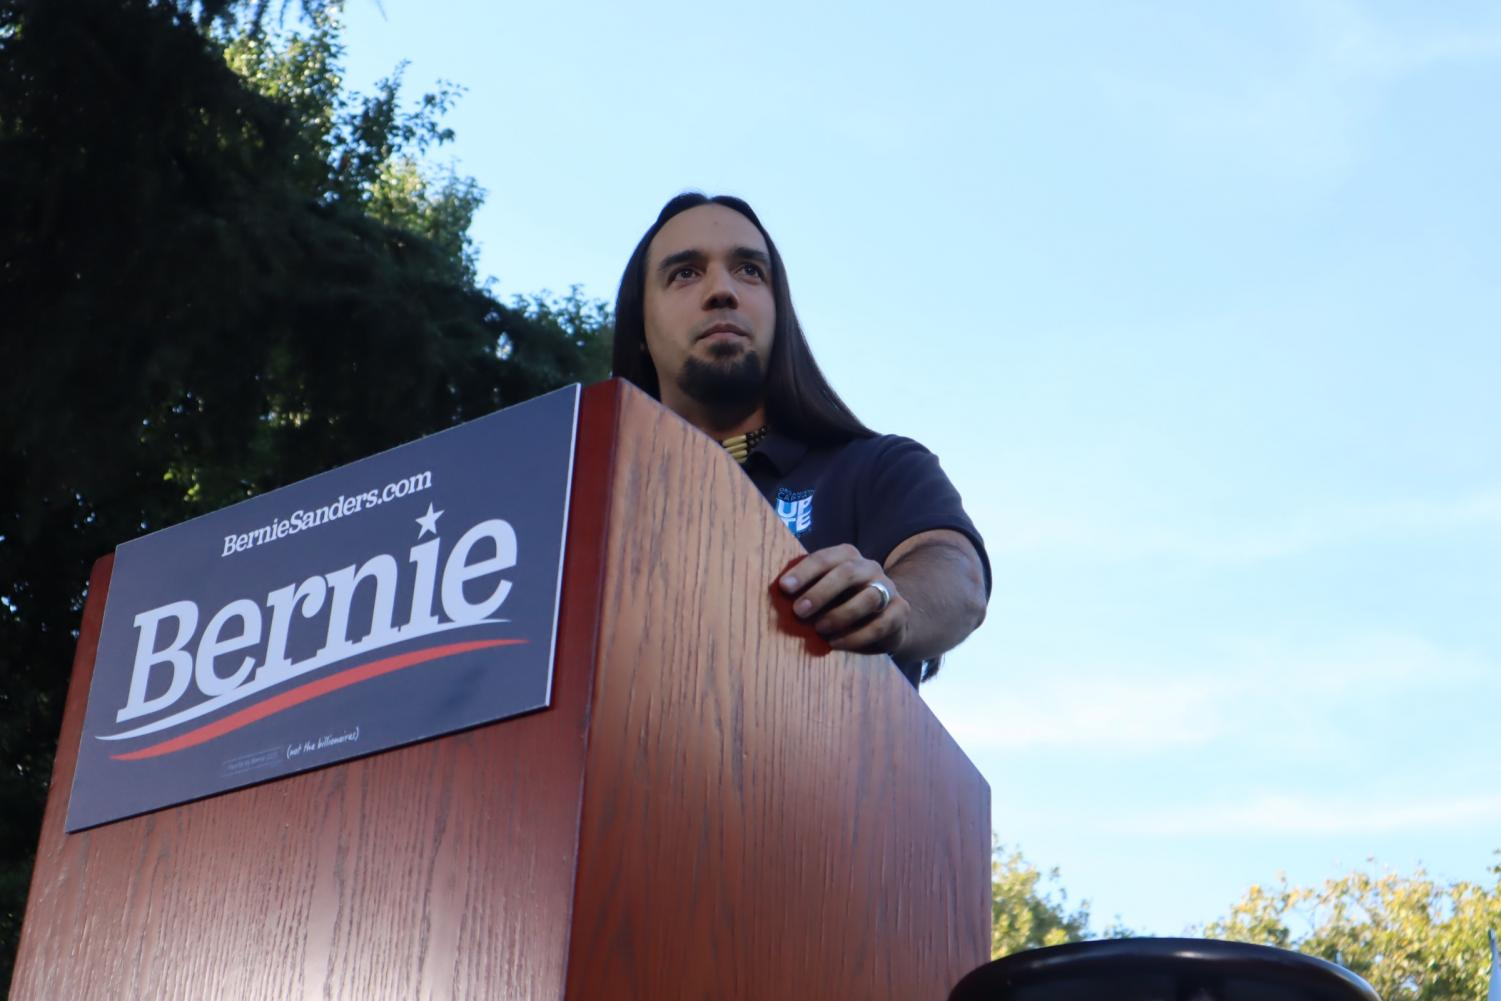 Joaquin+Chavez+addresses+the+crowd+at+a+Bernie+Sanders%27+campaign+rally+at+Cesar+Chavez+Plaza+on+Thursday%2C+Aug.+22%2C+2019.+Chavez+spoke+on+how+Sanders+supported+the+University+of+California+unions+while+other+presidential+candidates+did+not.